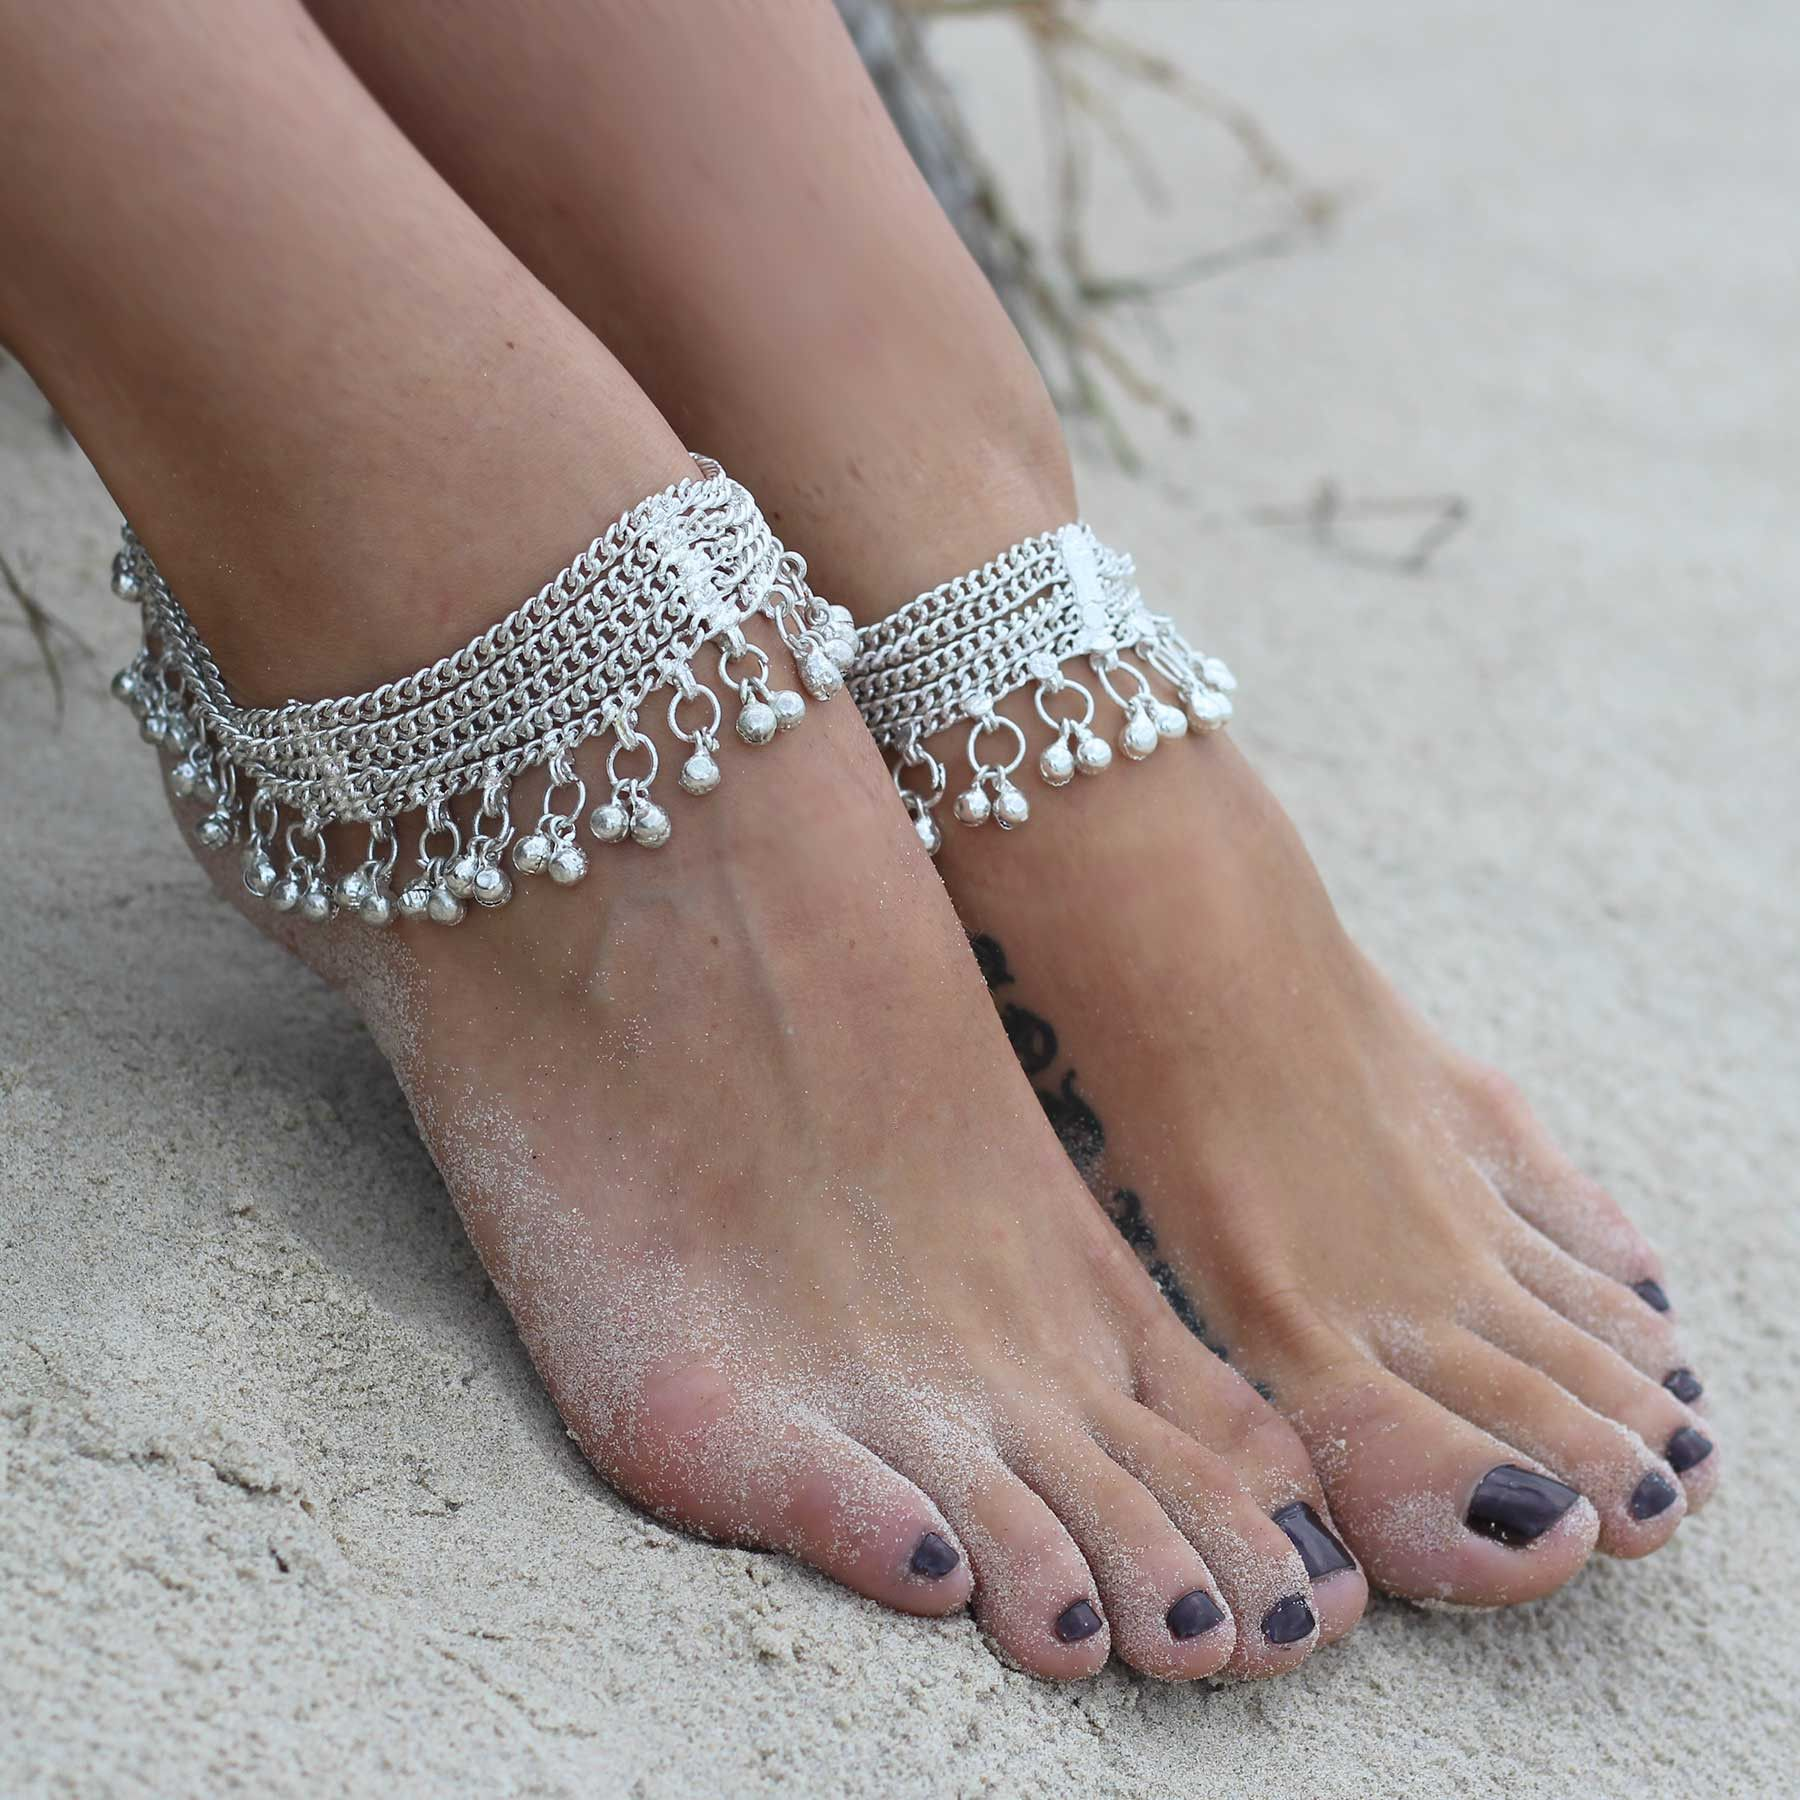 pin anklet shoes silver by enchanted jewelled wedding bridal jewelry forever soles anklets